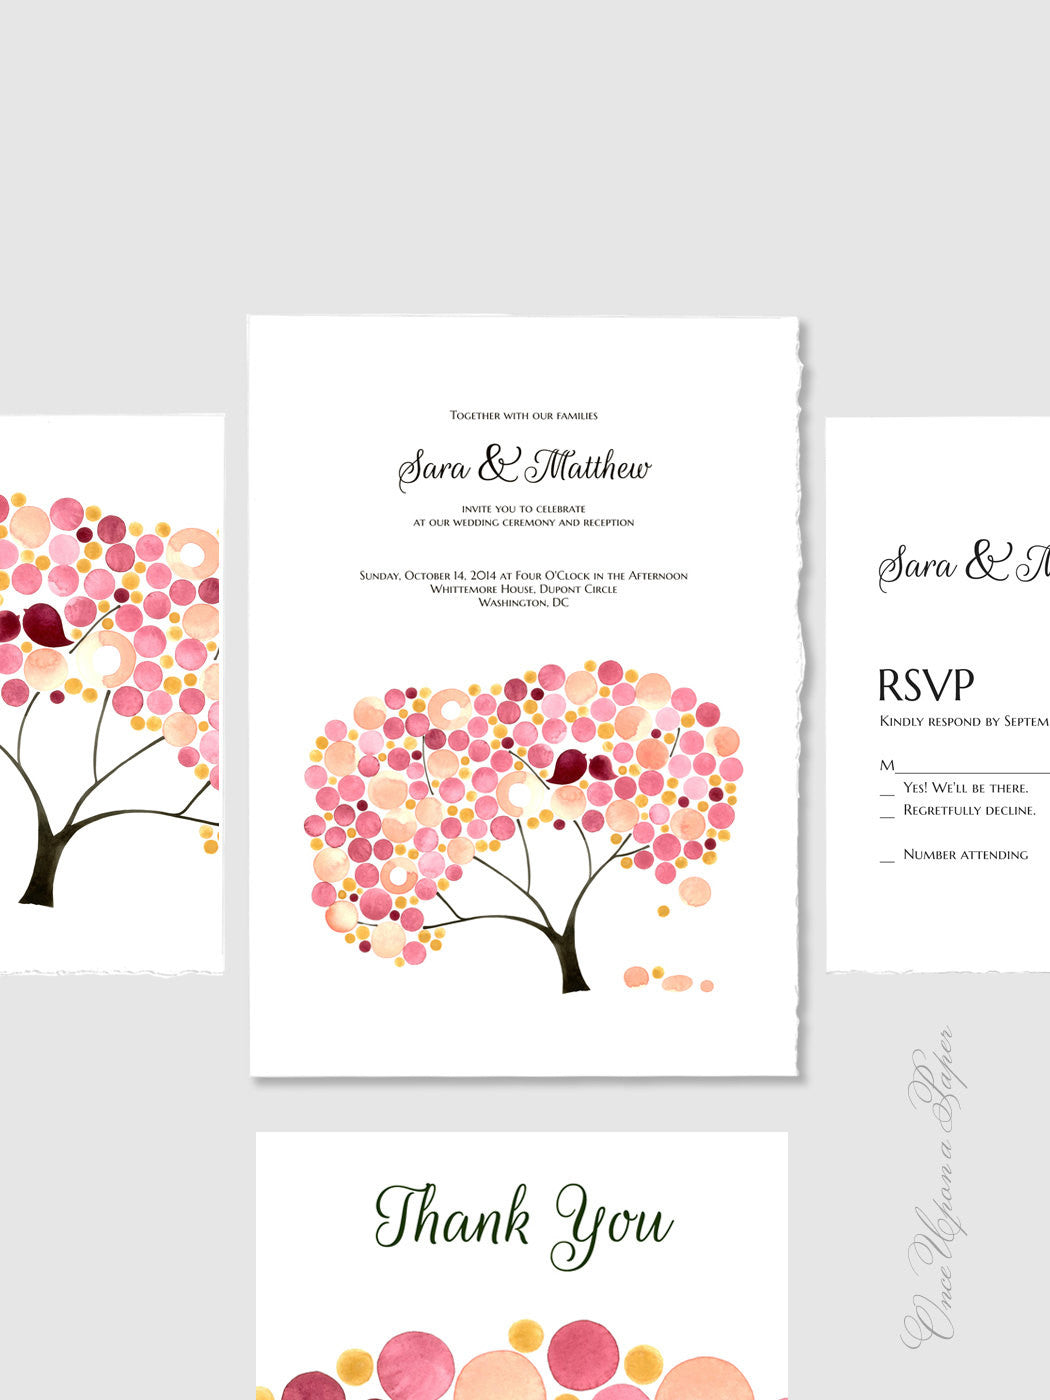 Wedding Suite Package DIY Printable - Save the Date, Wedding Invitations, Thank You Cards - Wedding Invitations, Anniversary Invitations